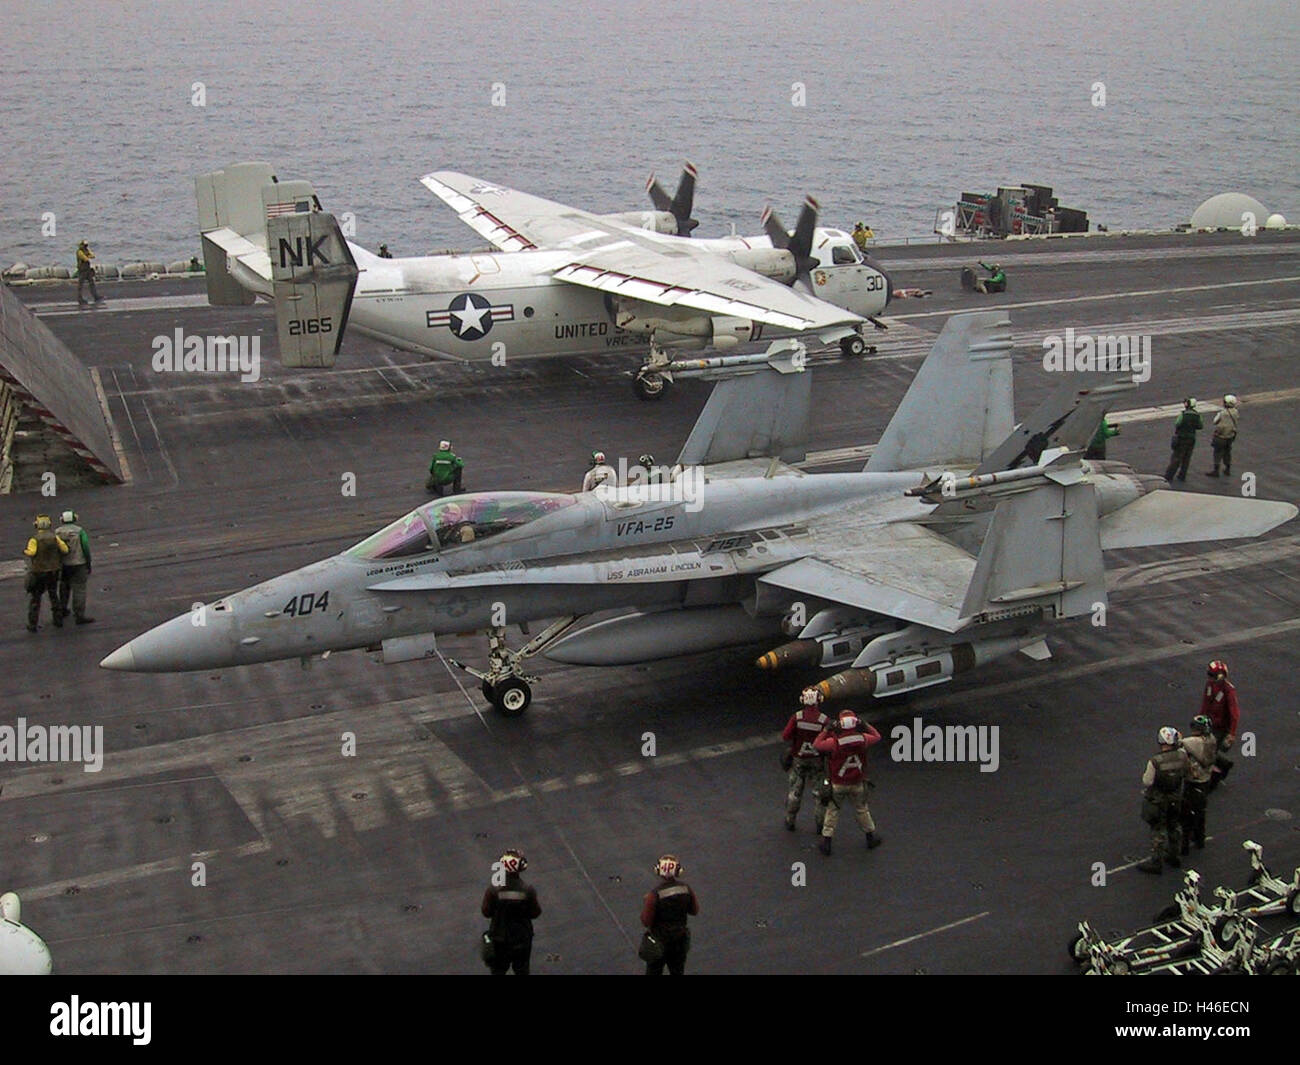 22nd March 2003 Operation Iraqi Freedom: aircraft about to take off from the USS Abraham Lincoln in the Persian - Stock Image